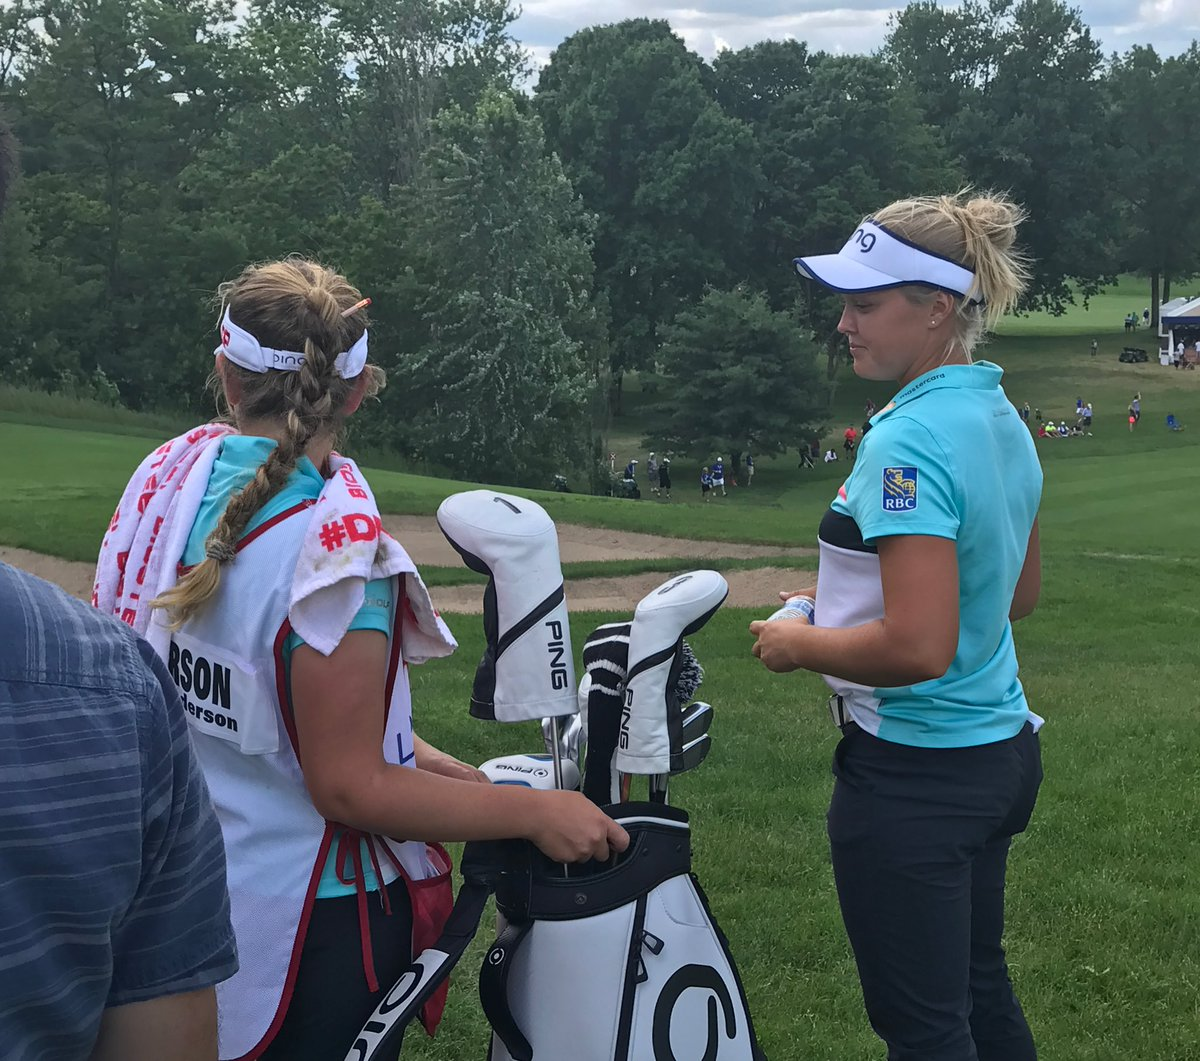 .@BrookeHenderson birdies the 7th to tie the lead at 15-under with @su...